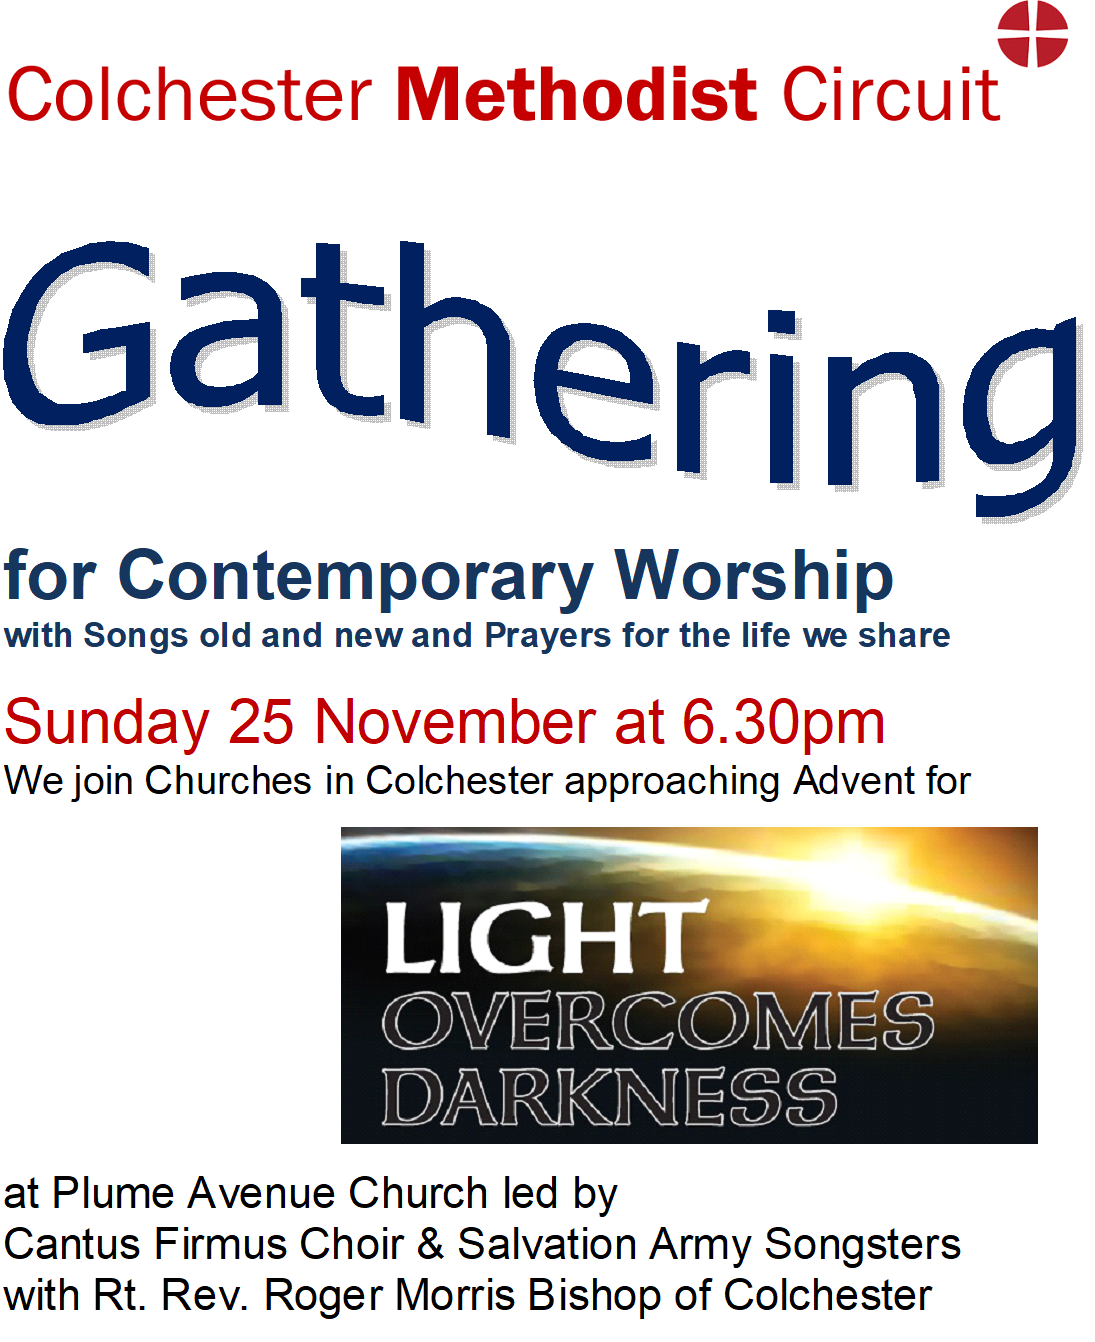 Contemporary Worship at Plume Avenue ight Overcomes Darkness November 25th 2018